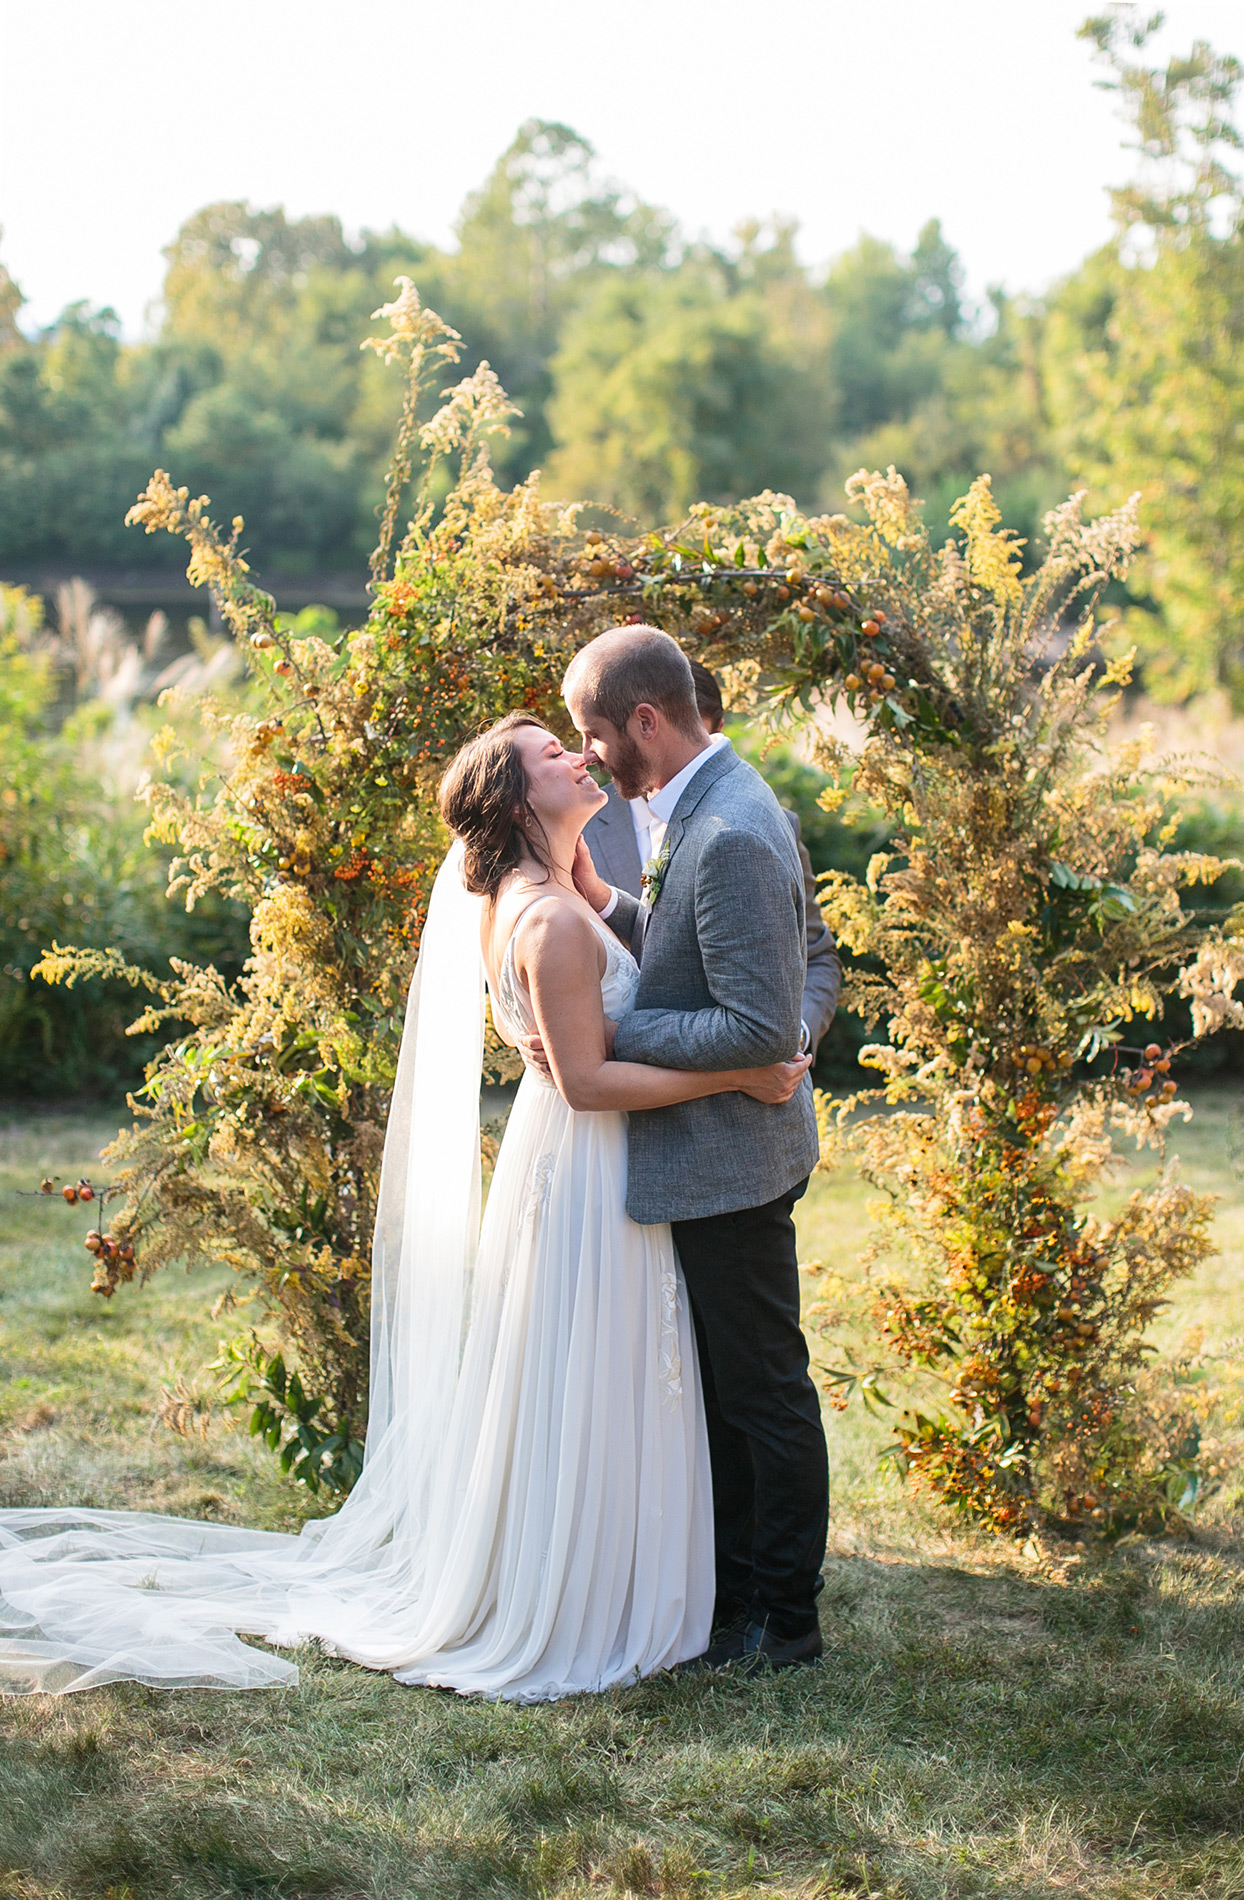 bride and groom sharing kiss next to wedding arch